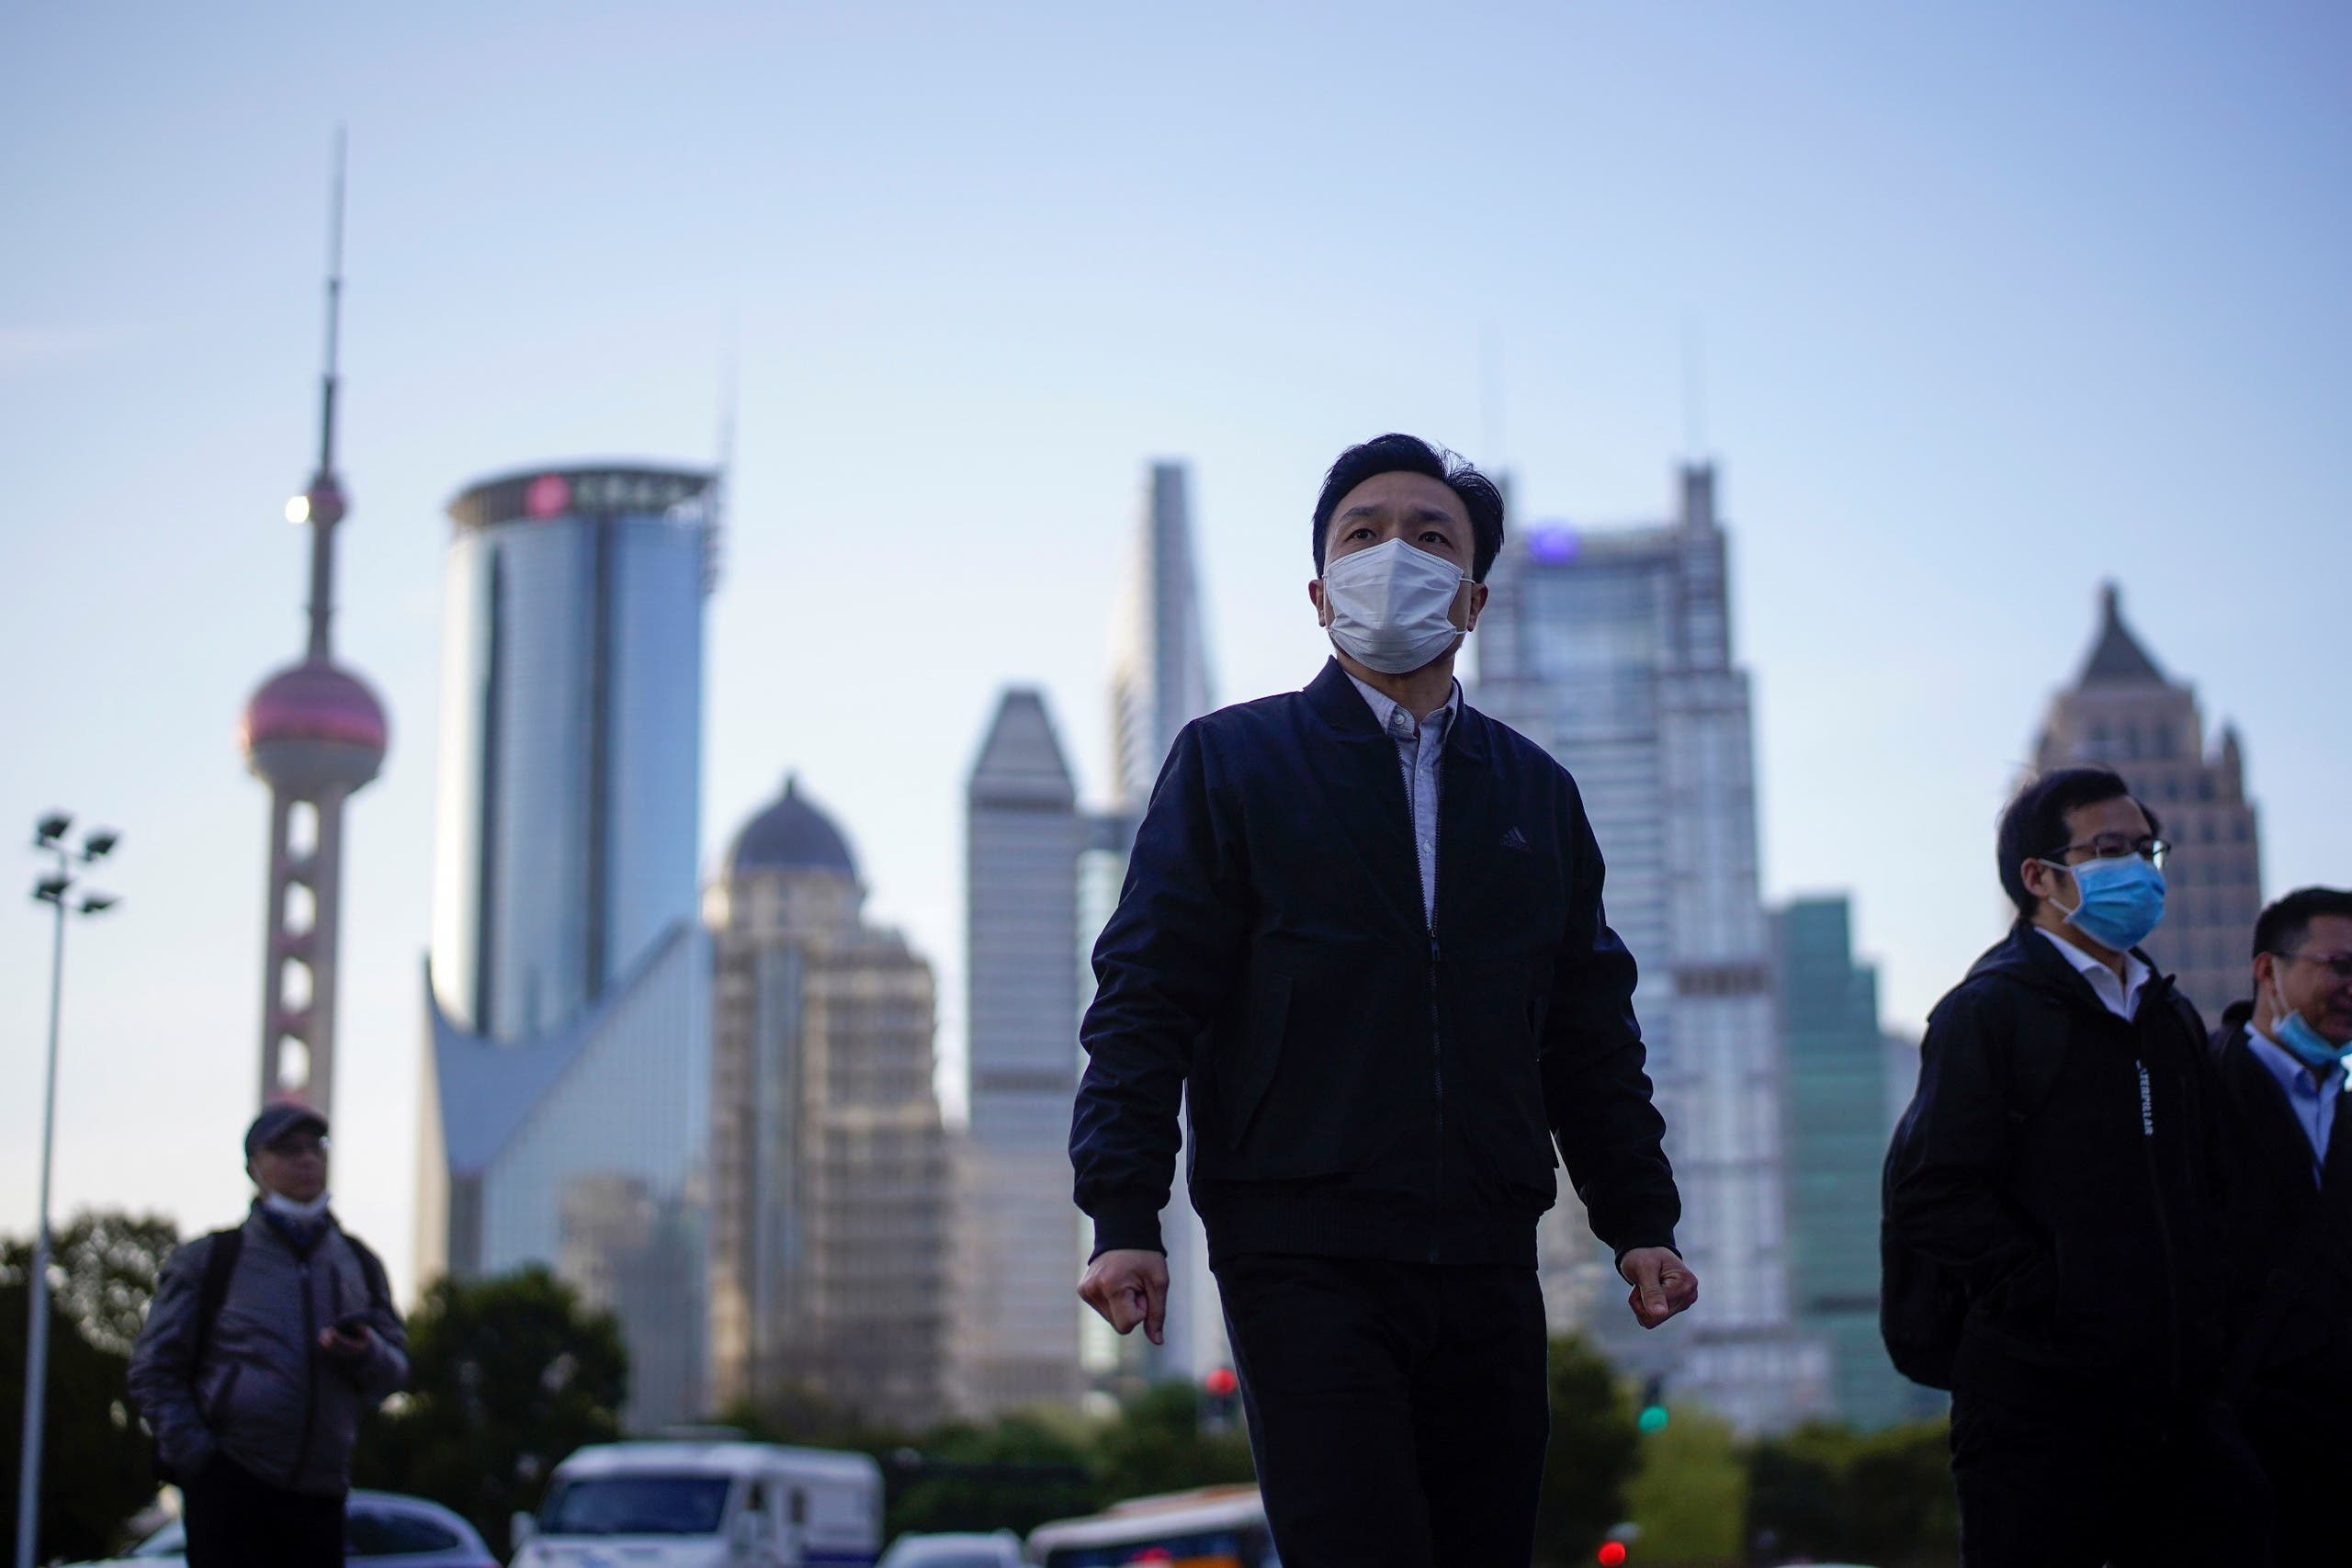 People wear protective face masks, following an outbreak of the novel coronavirus, at Lujiazui financial district in Shanghai, China, March 19, 2020. (File photo: Reuters)